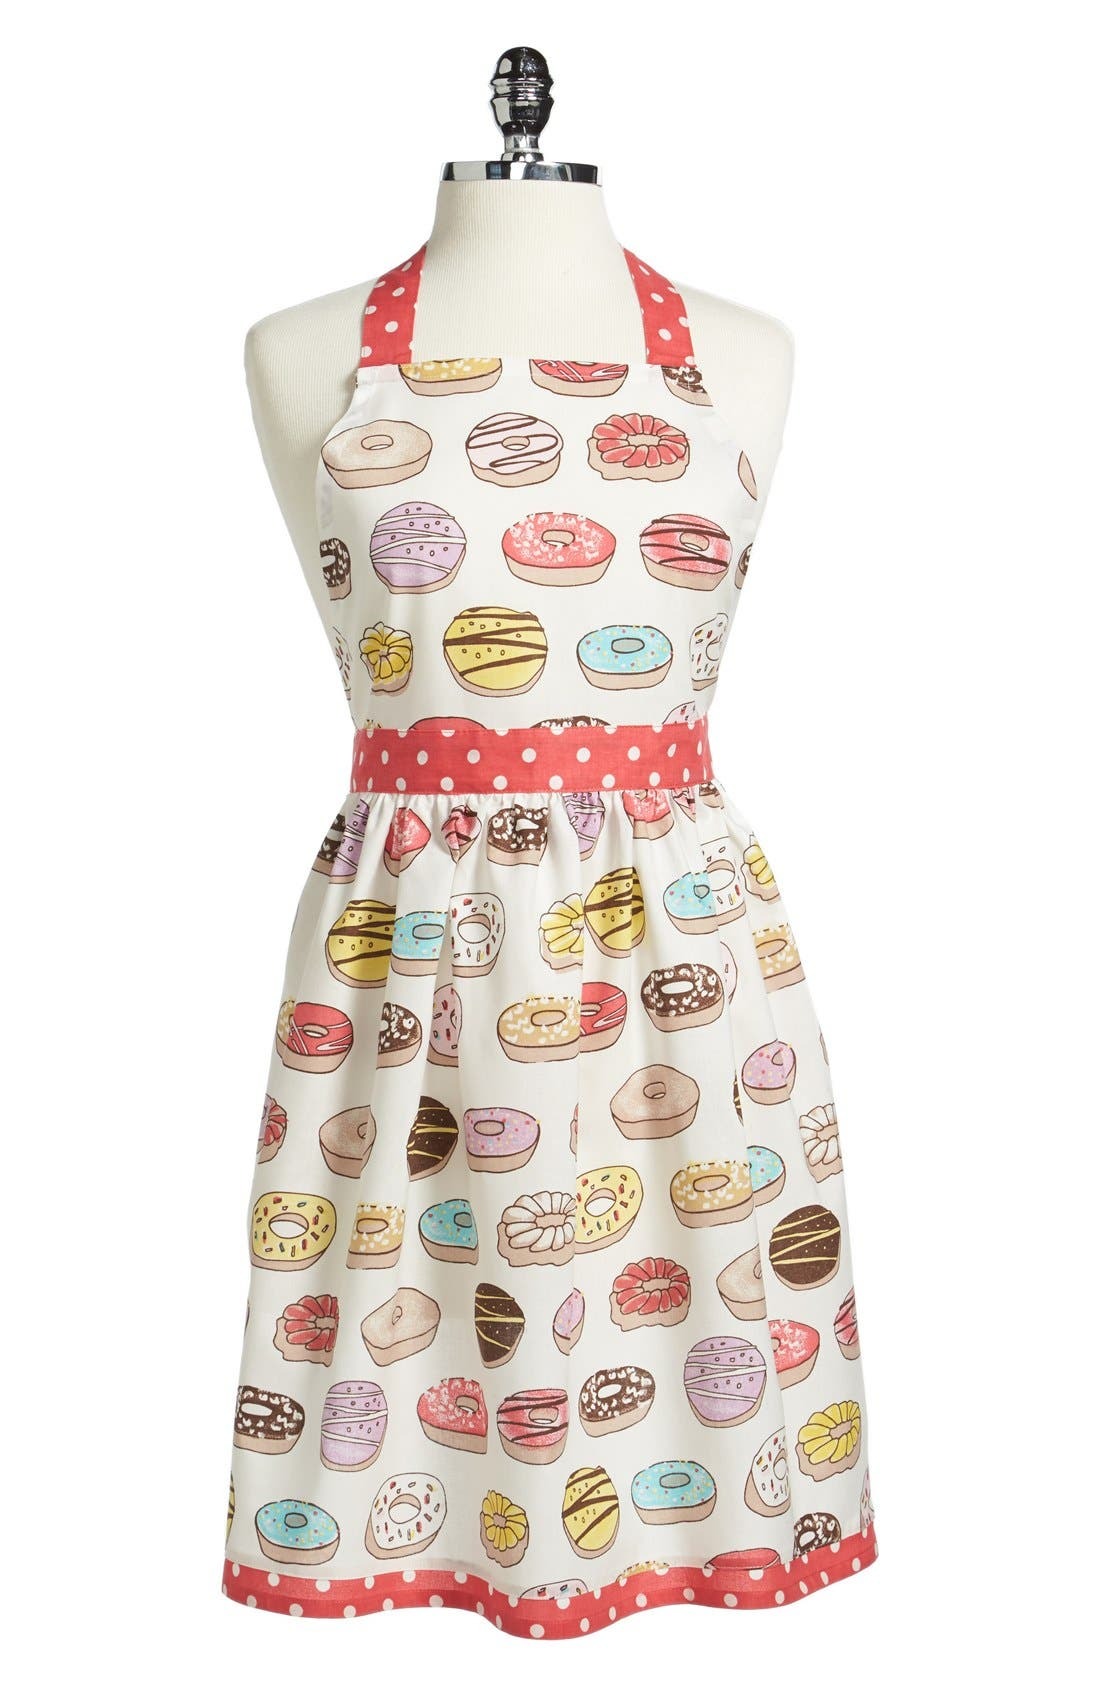 Alternate Image 1 Selected - PJ Salvage Donut Print Cotton Apron